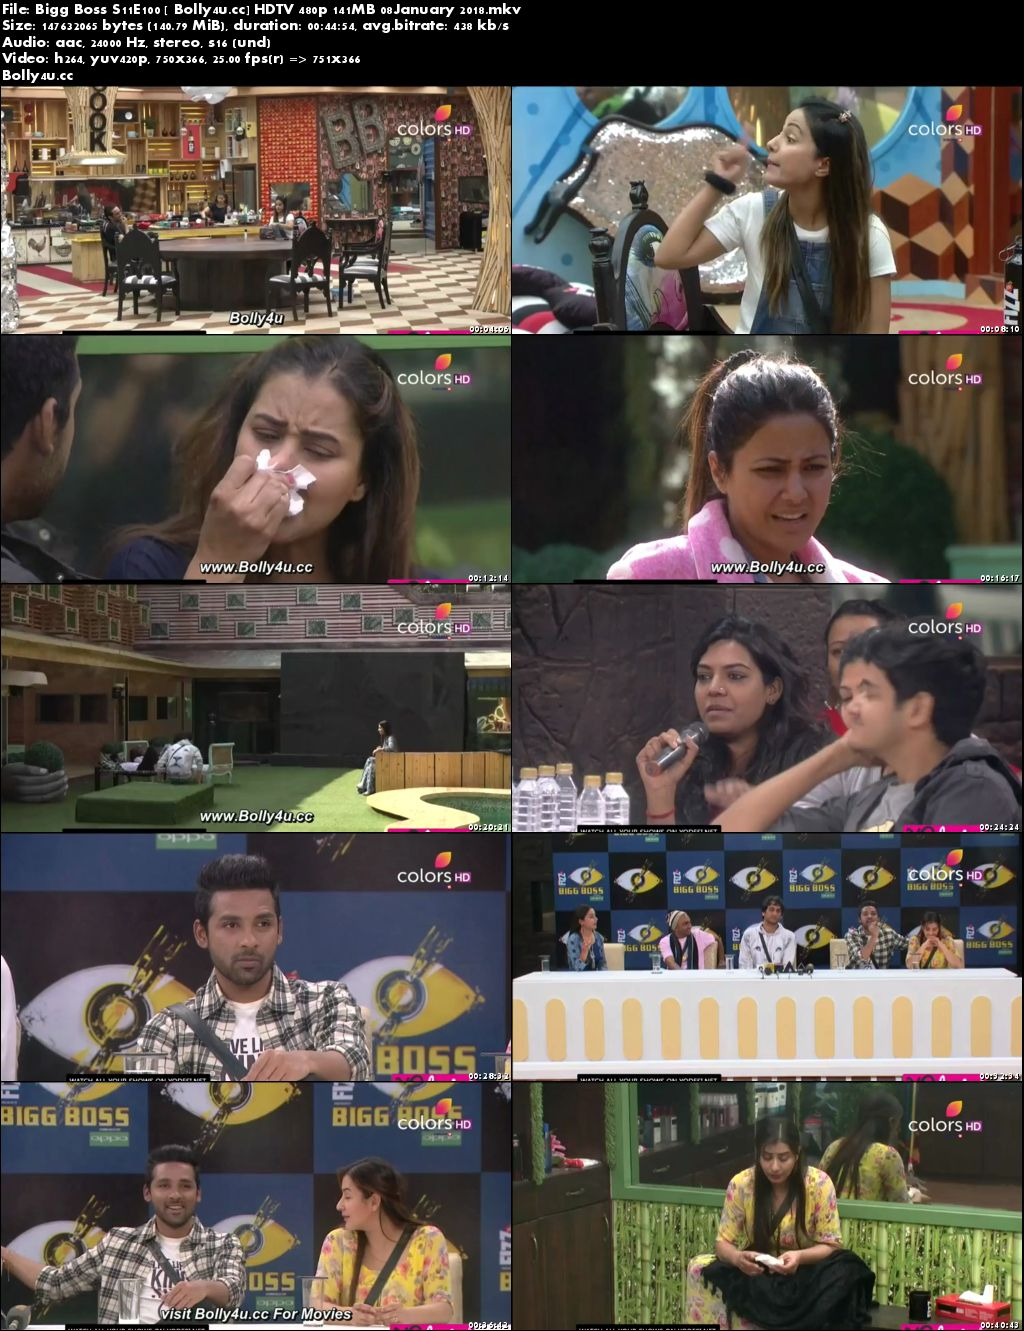 Bigg Boss S11E100 HDTV 480p 140MB 08 January 2018 Download